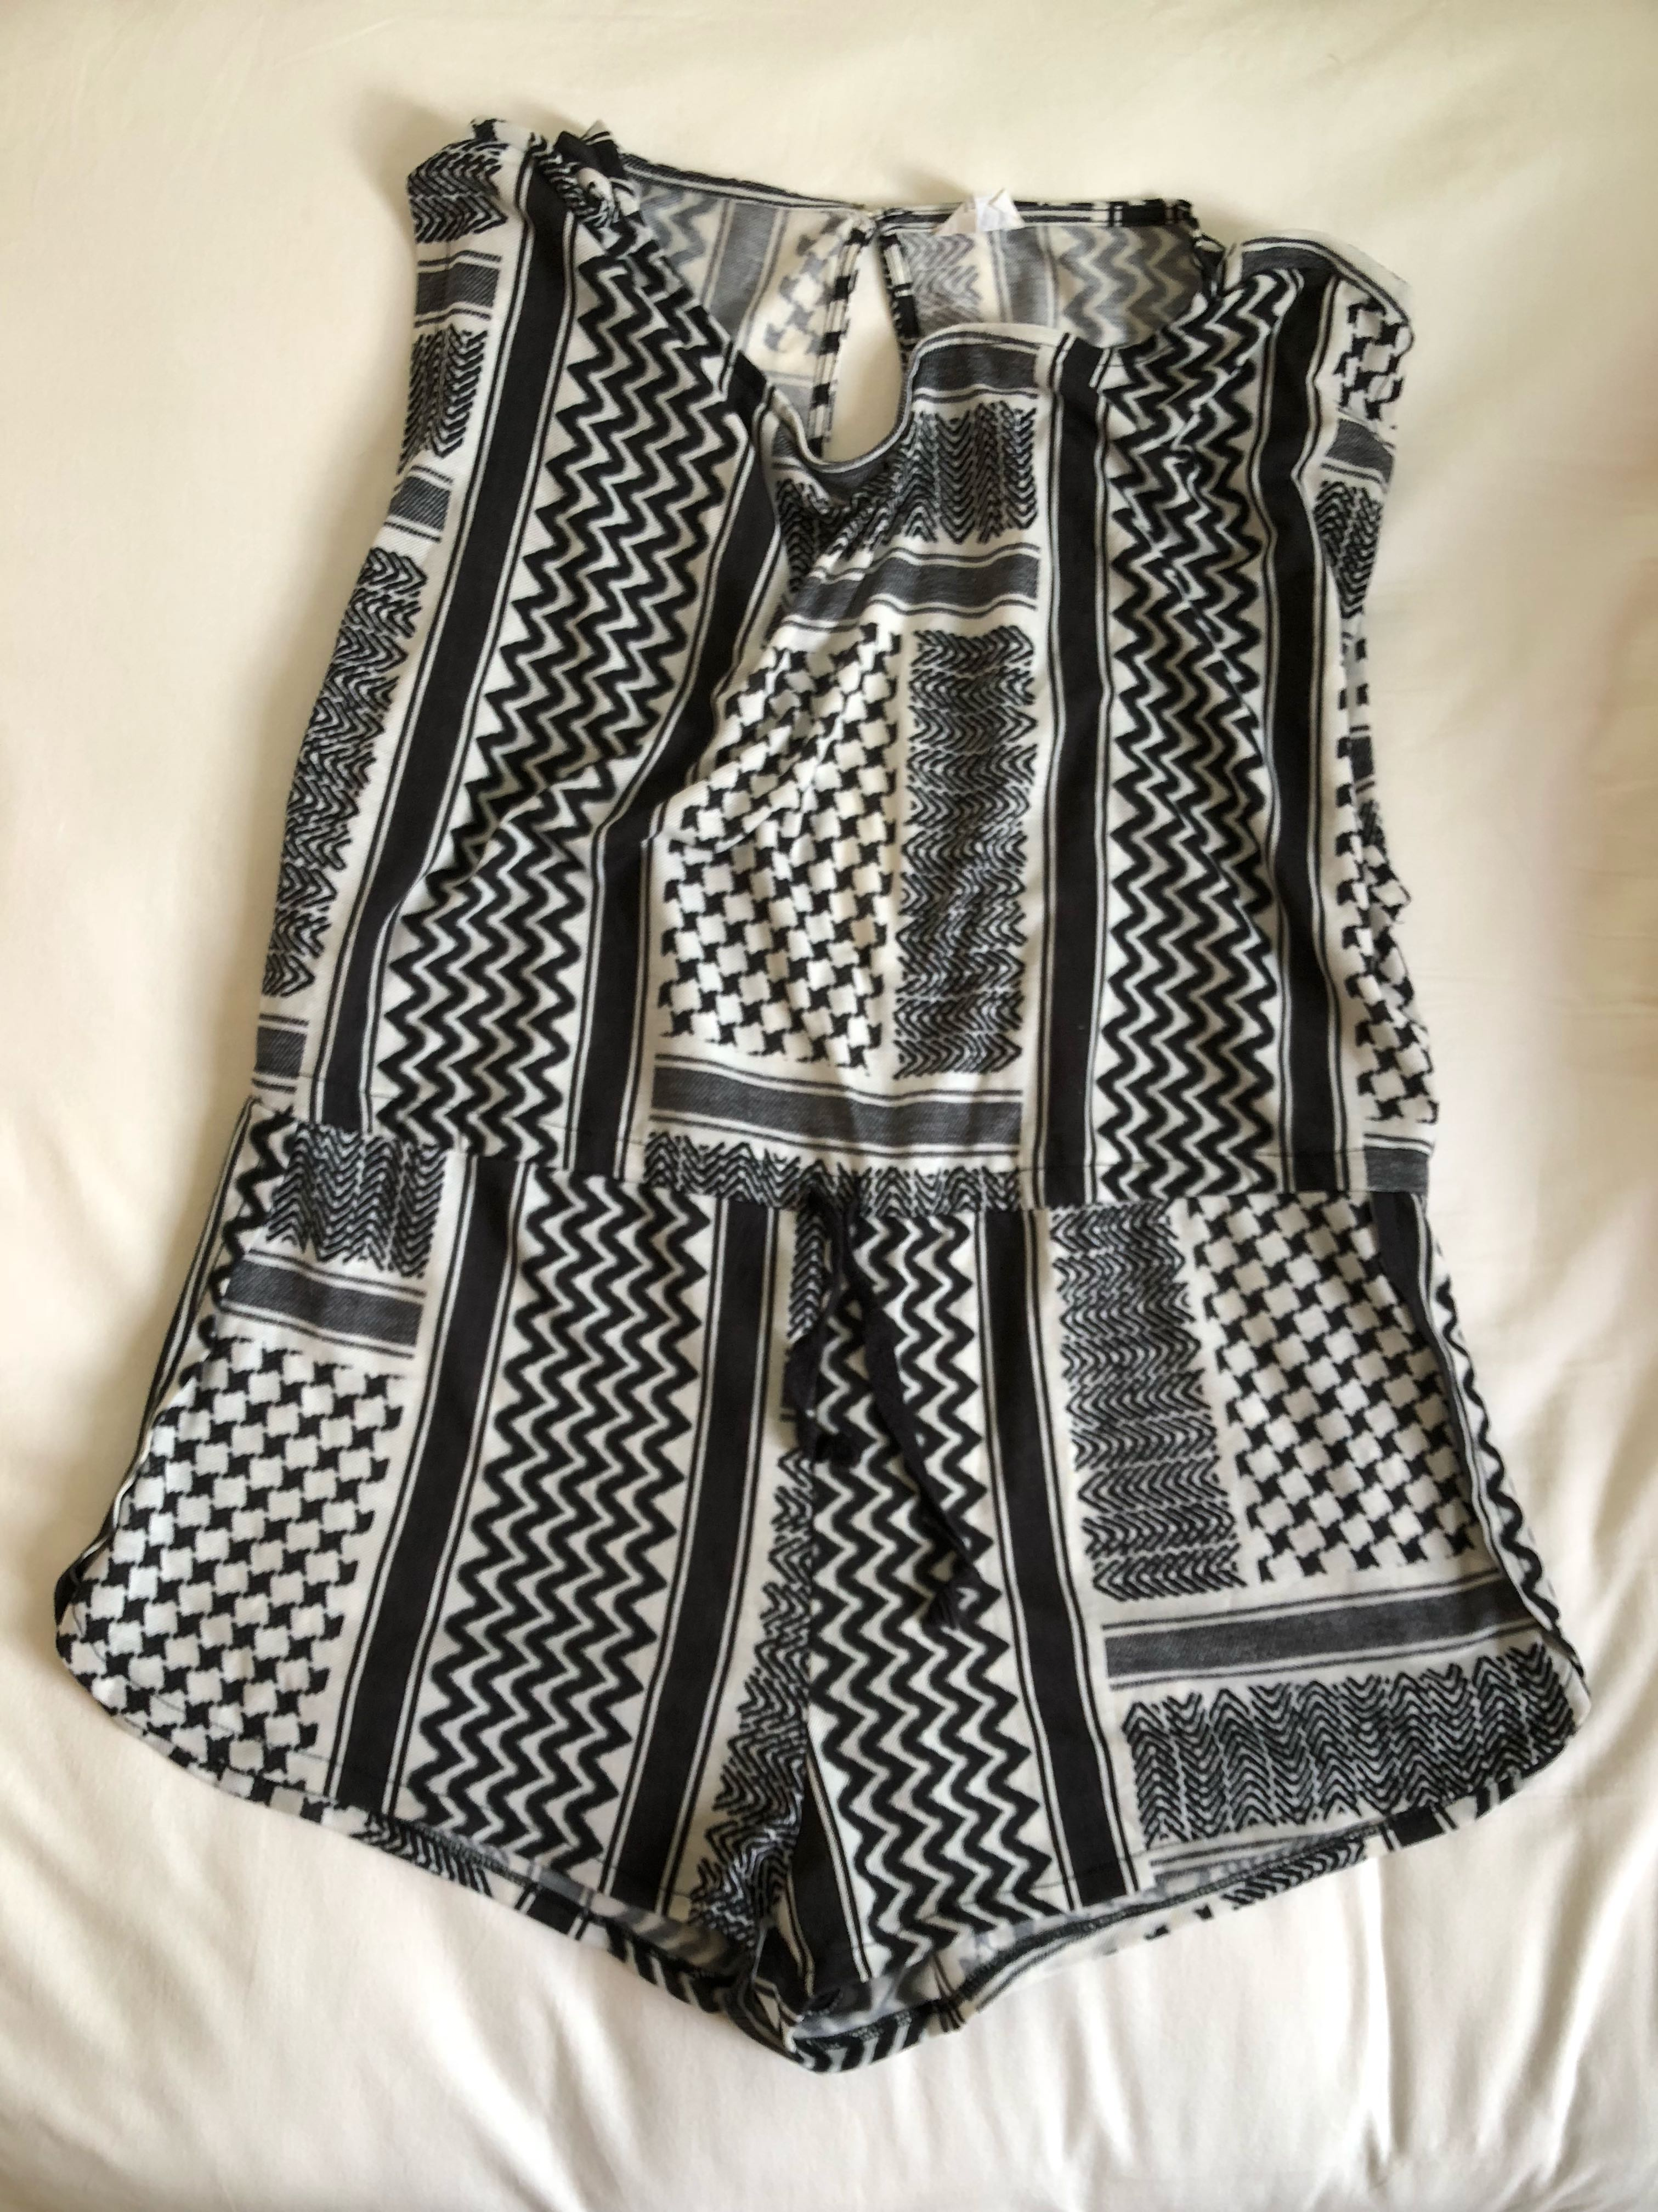 d39e1545 ZARA TRF Romper, Women's Fashion, Clothes, Rompers & Jumpsuits on ...